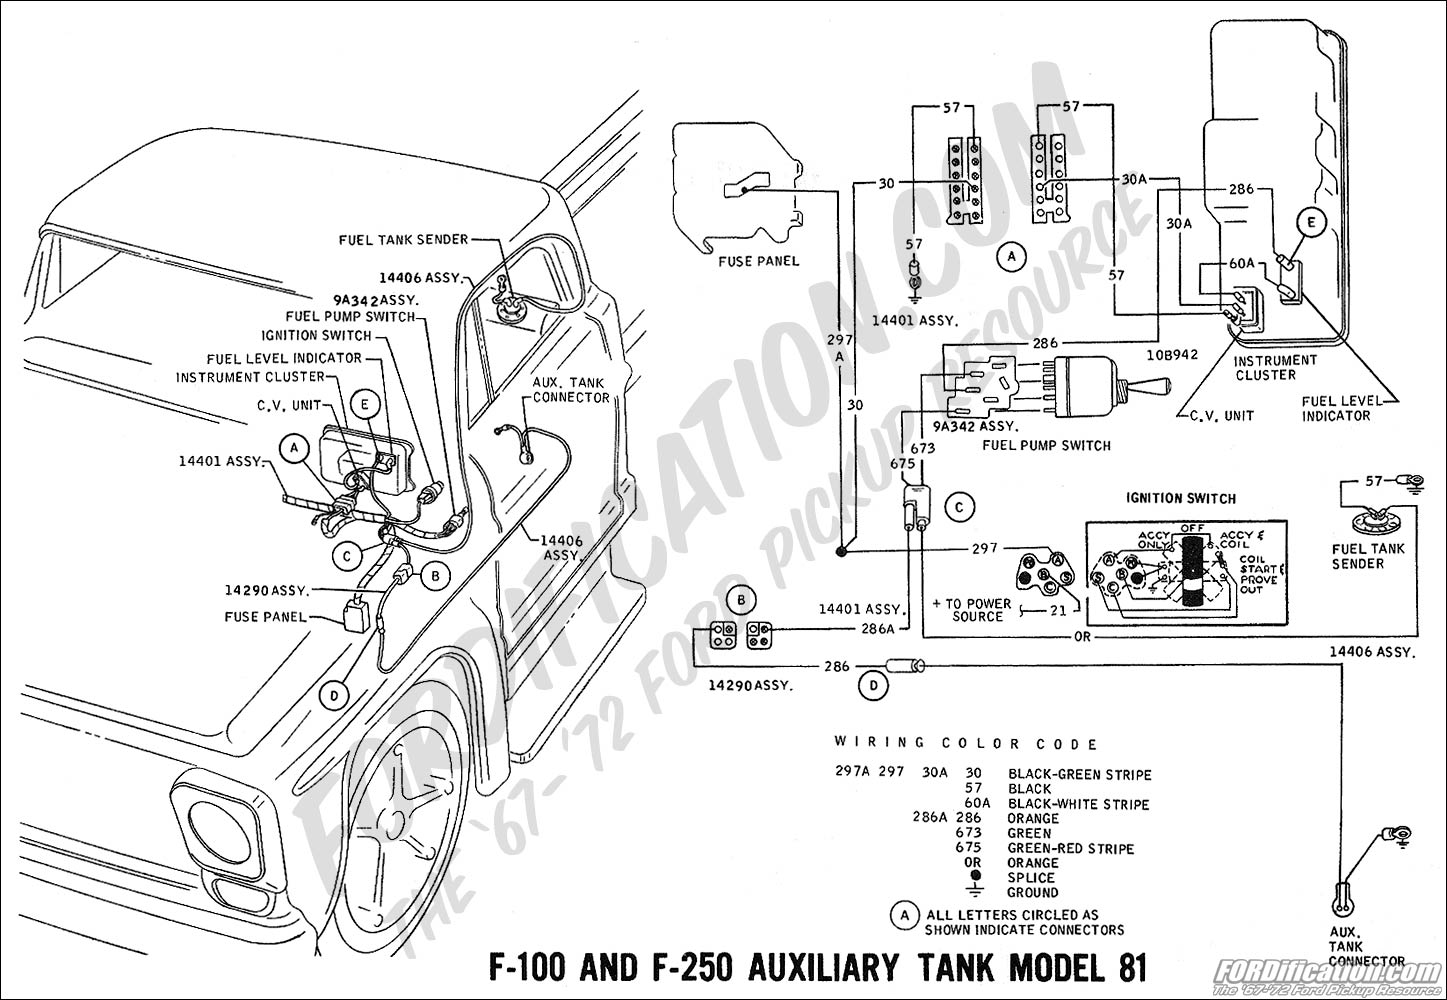 wiring_69aux fuel 69 f100 wiring diagram 1973 ford f100 wiring diagram \u2022 wiring Ford E-350 Fuse Box Diagram at highcare.asia